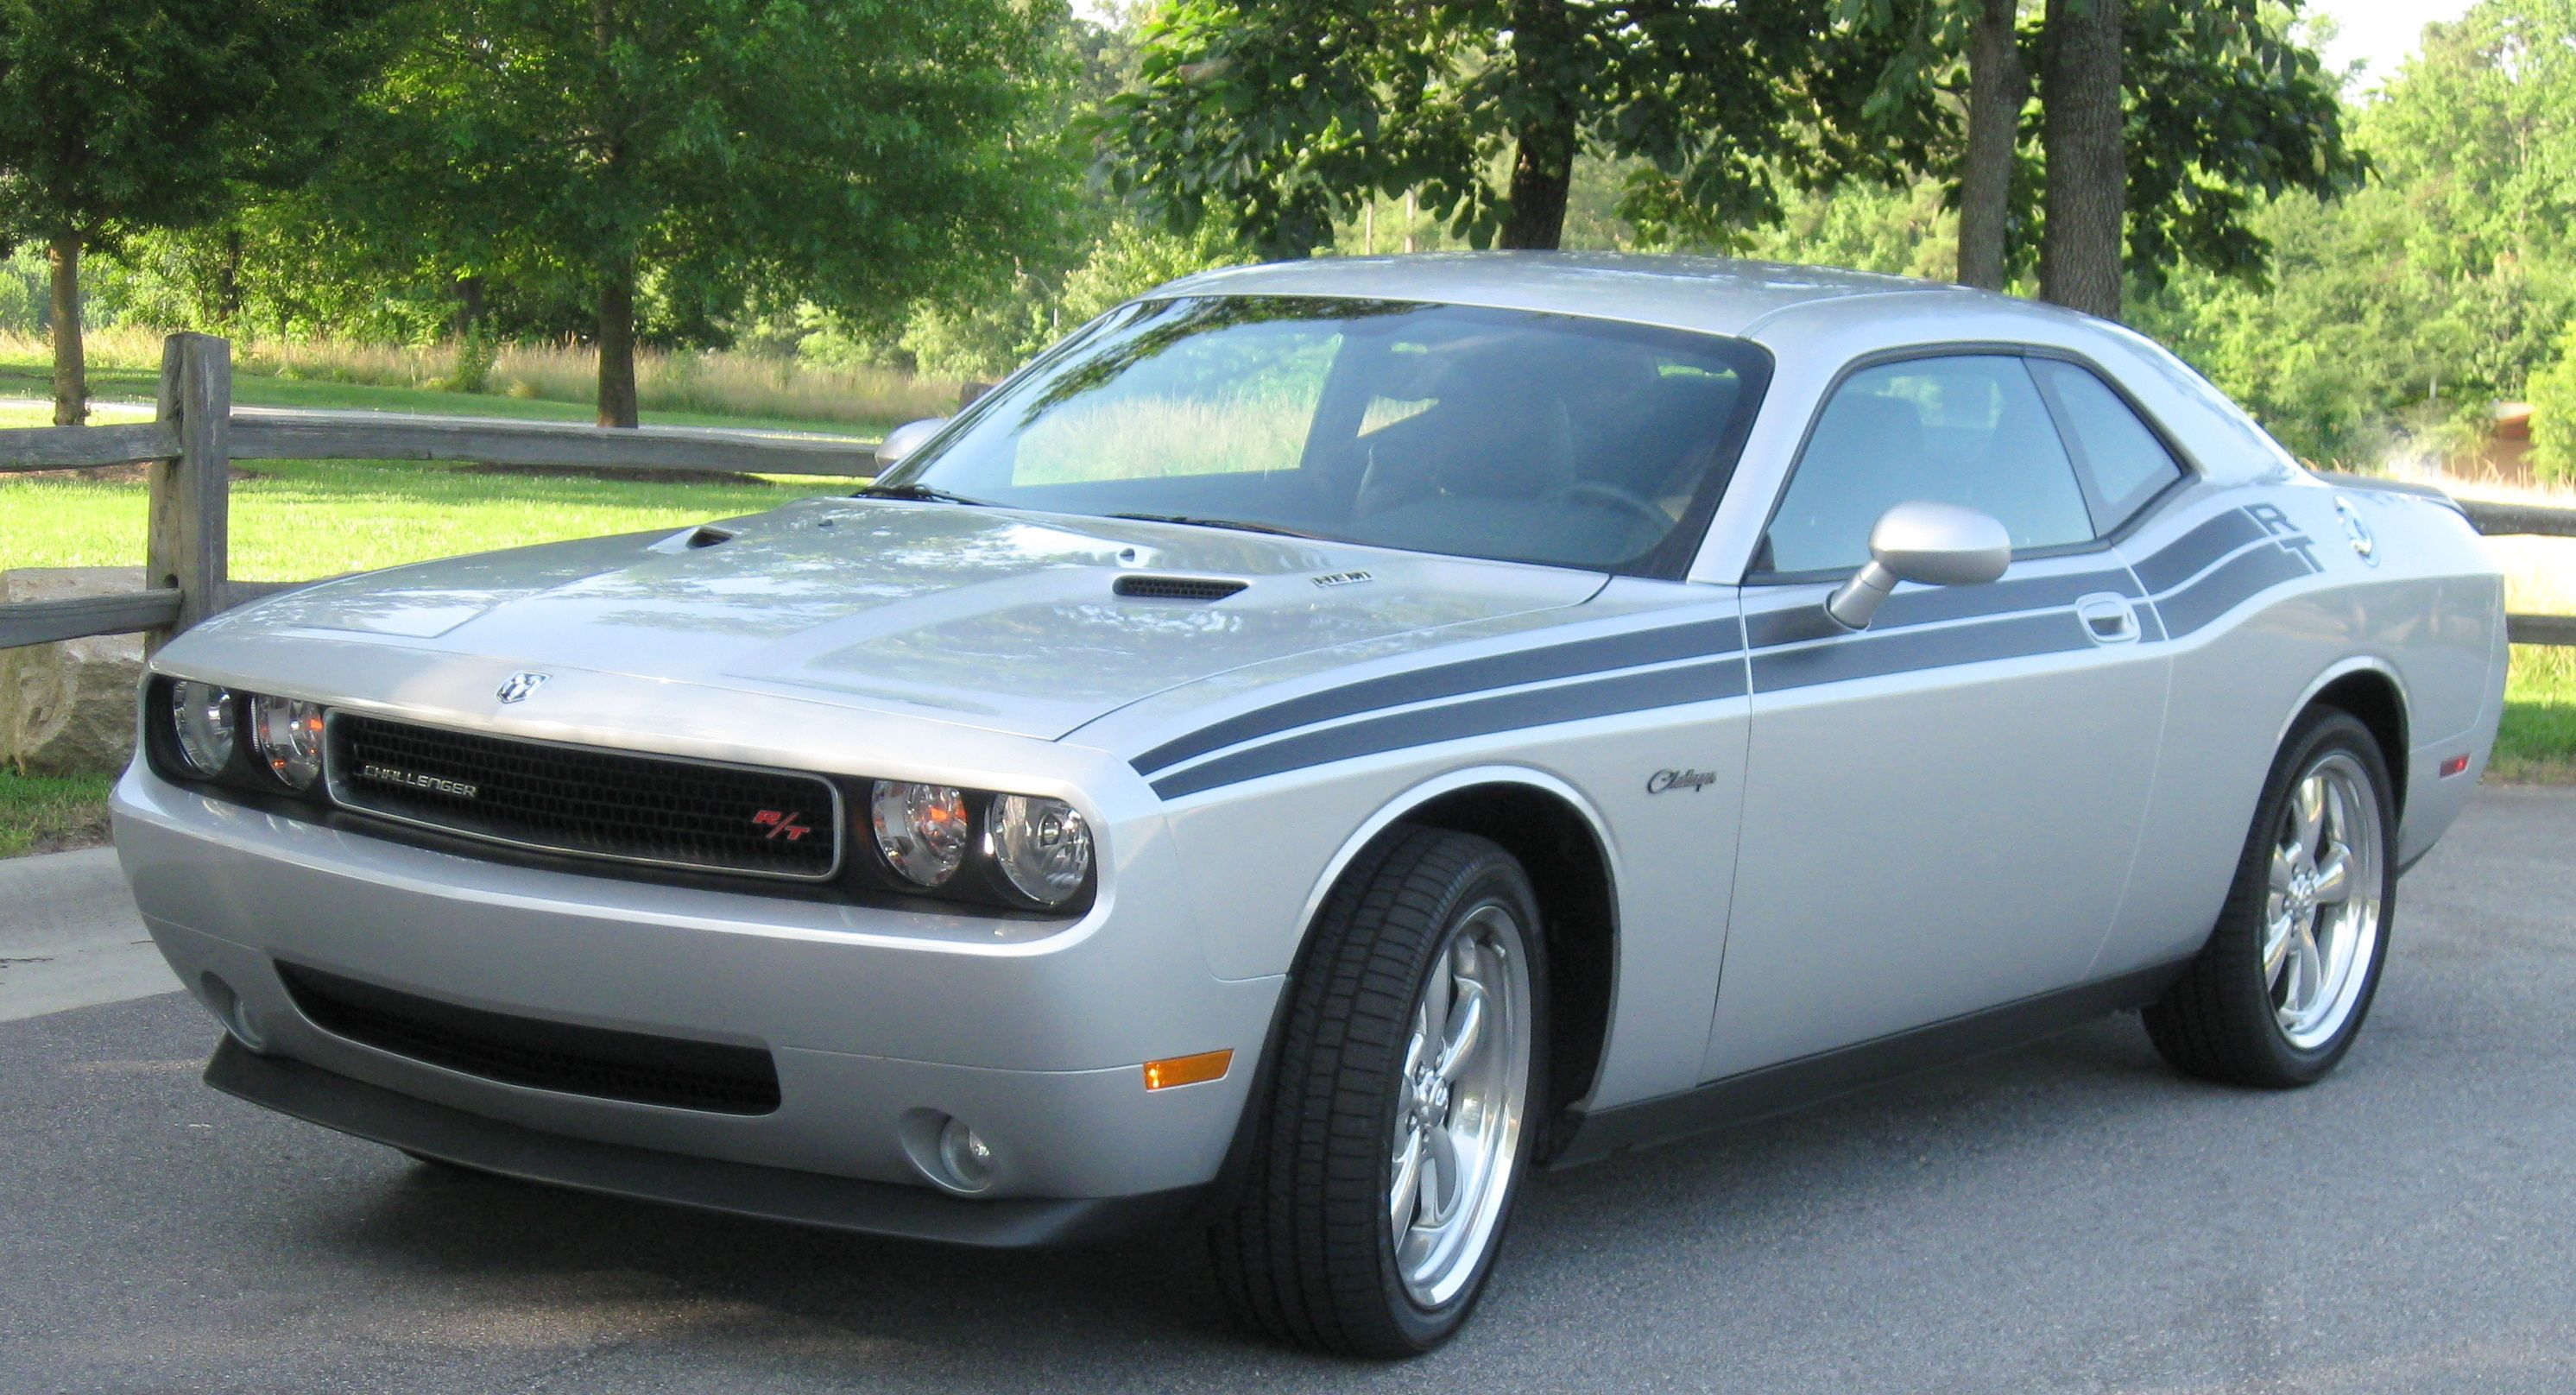 Dodge challenger wikipedia the free encyclopedia